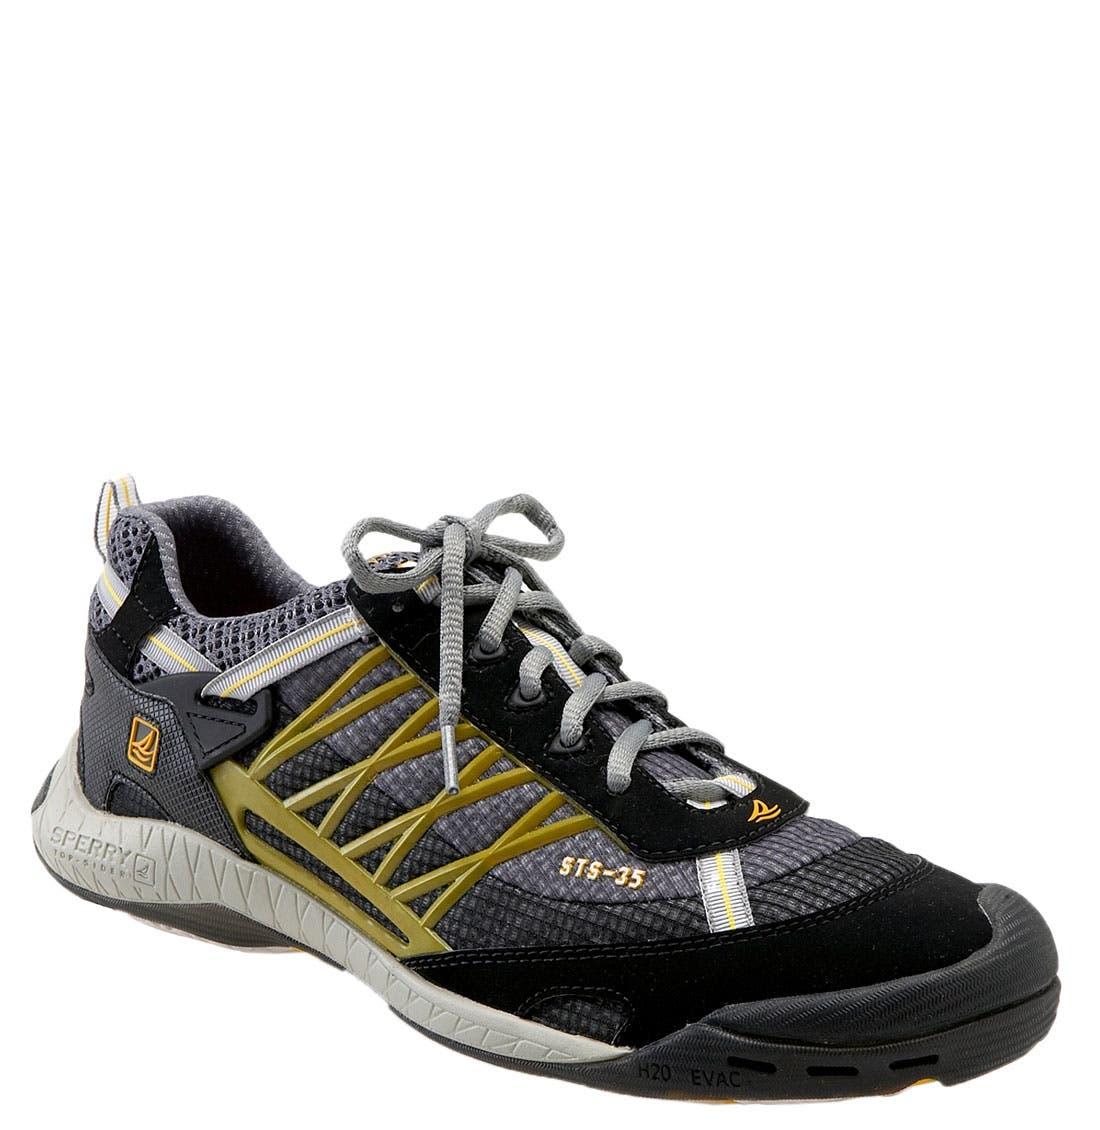 Alternate Image 1 Selected - Sperry Top-Sider® 'Ventus' Athletic Boat Shoe (Men)